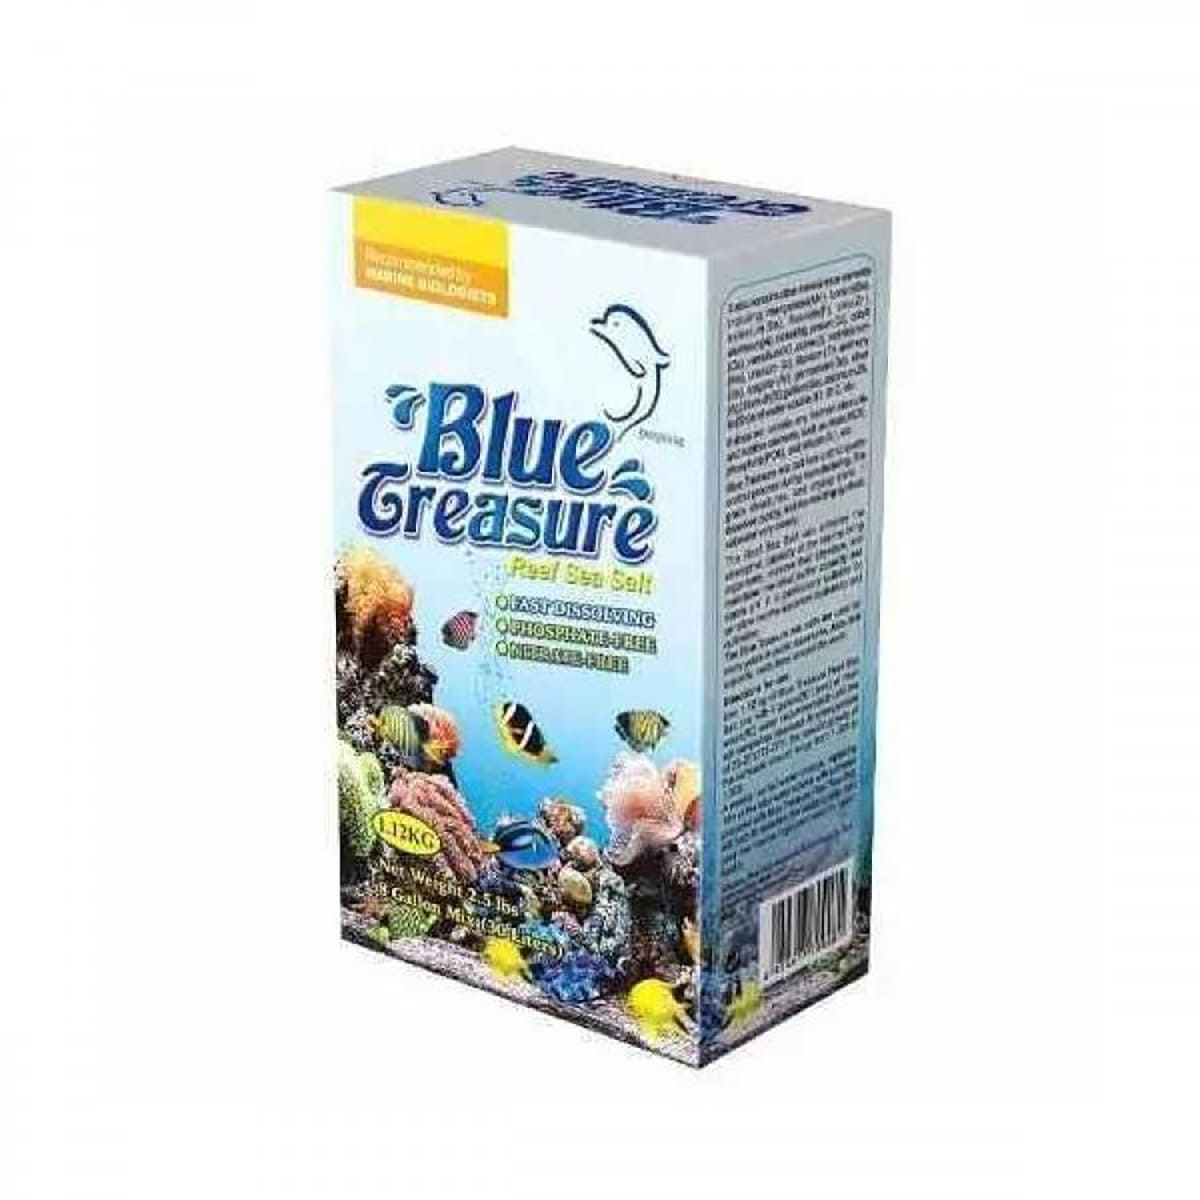 Blue Treasure Reef Sea Salt 1,12 Kg